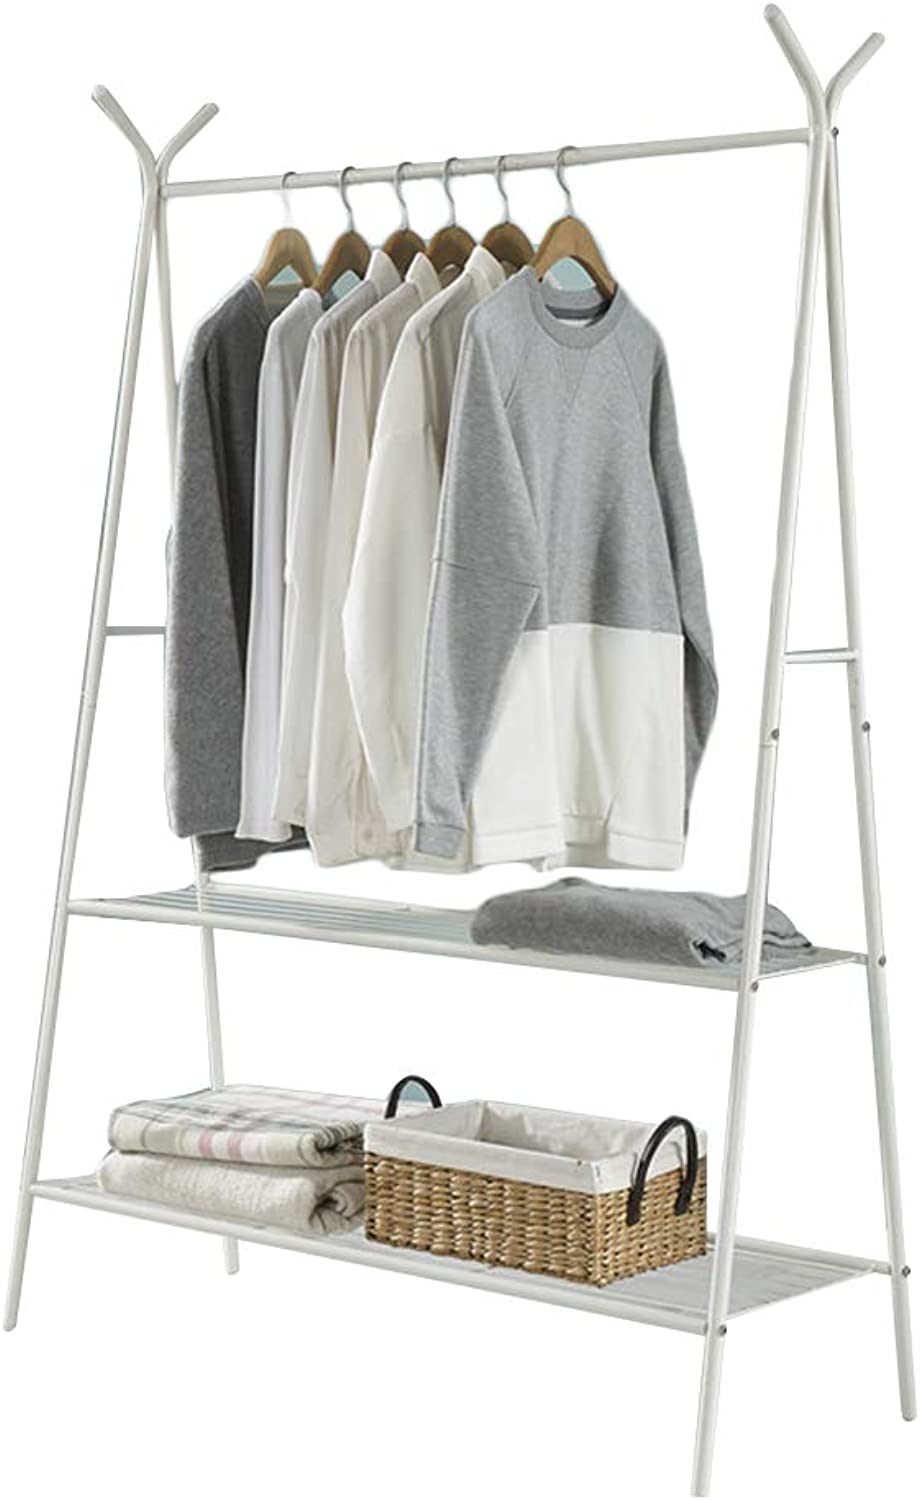 QIANGDA Coat Rack Floor Standing Clothes Hanger White Steel Frame Single Pole shoes Rack for Living Room, 2 Sizes (Size   100X160cm)